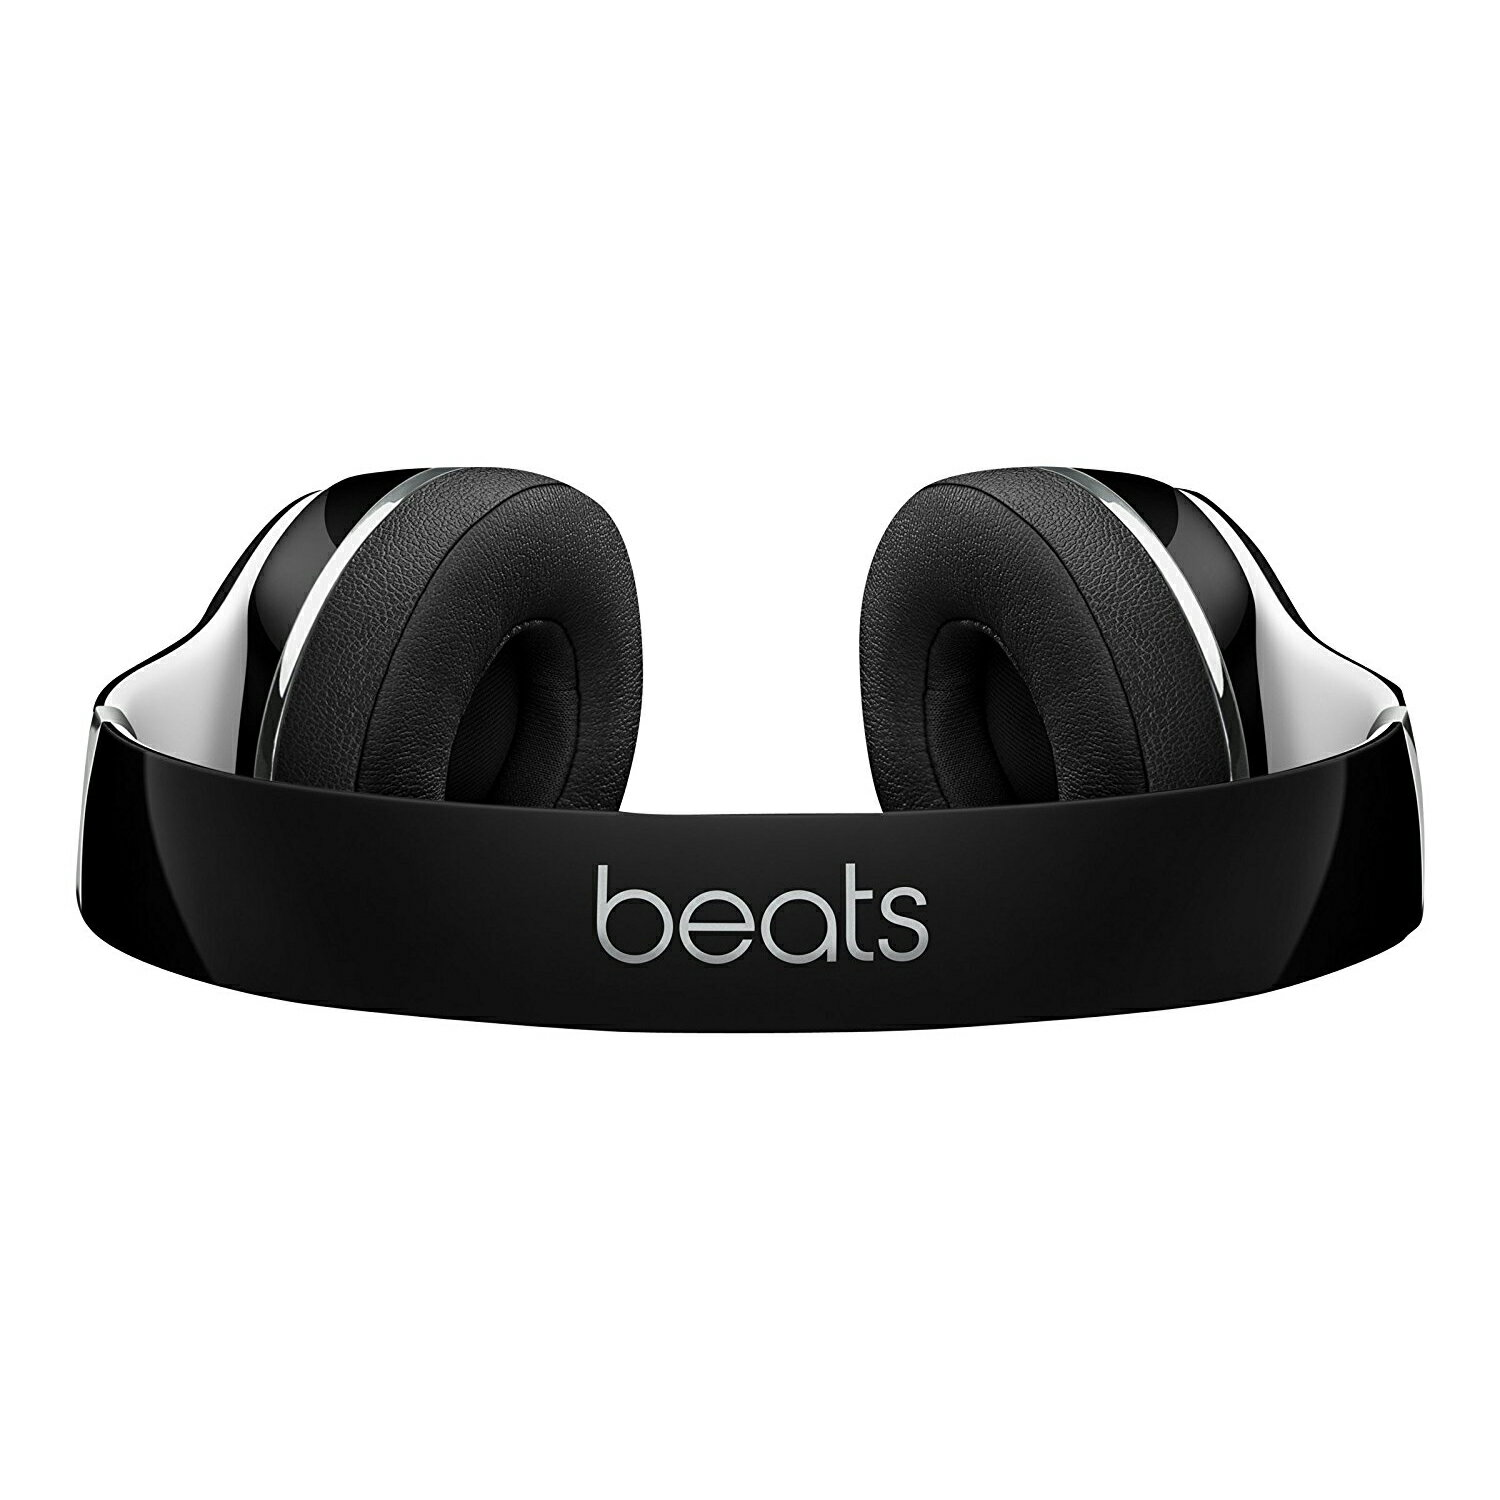 Beats by Dr. Dre Solo2 Luxe Edition On-Ear Foldable Stereo Headphones - Black 2